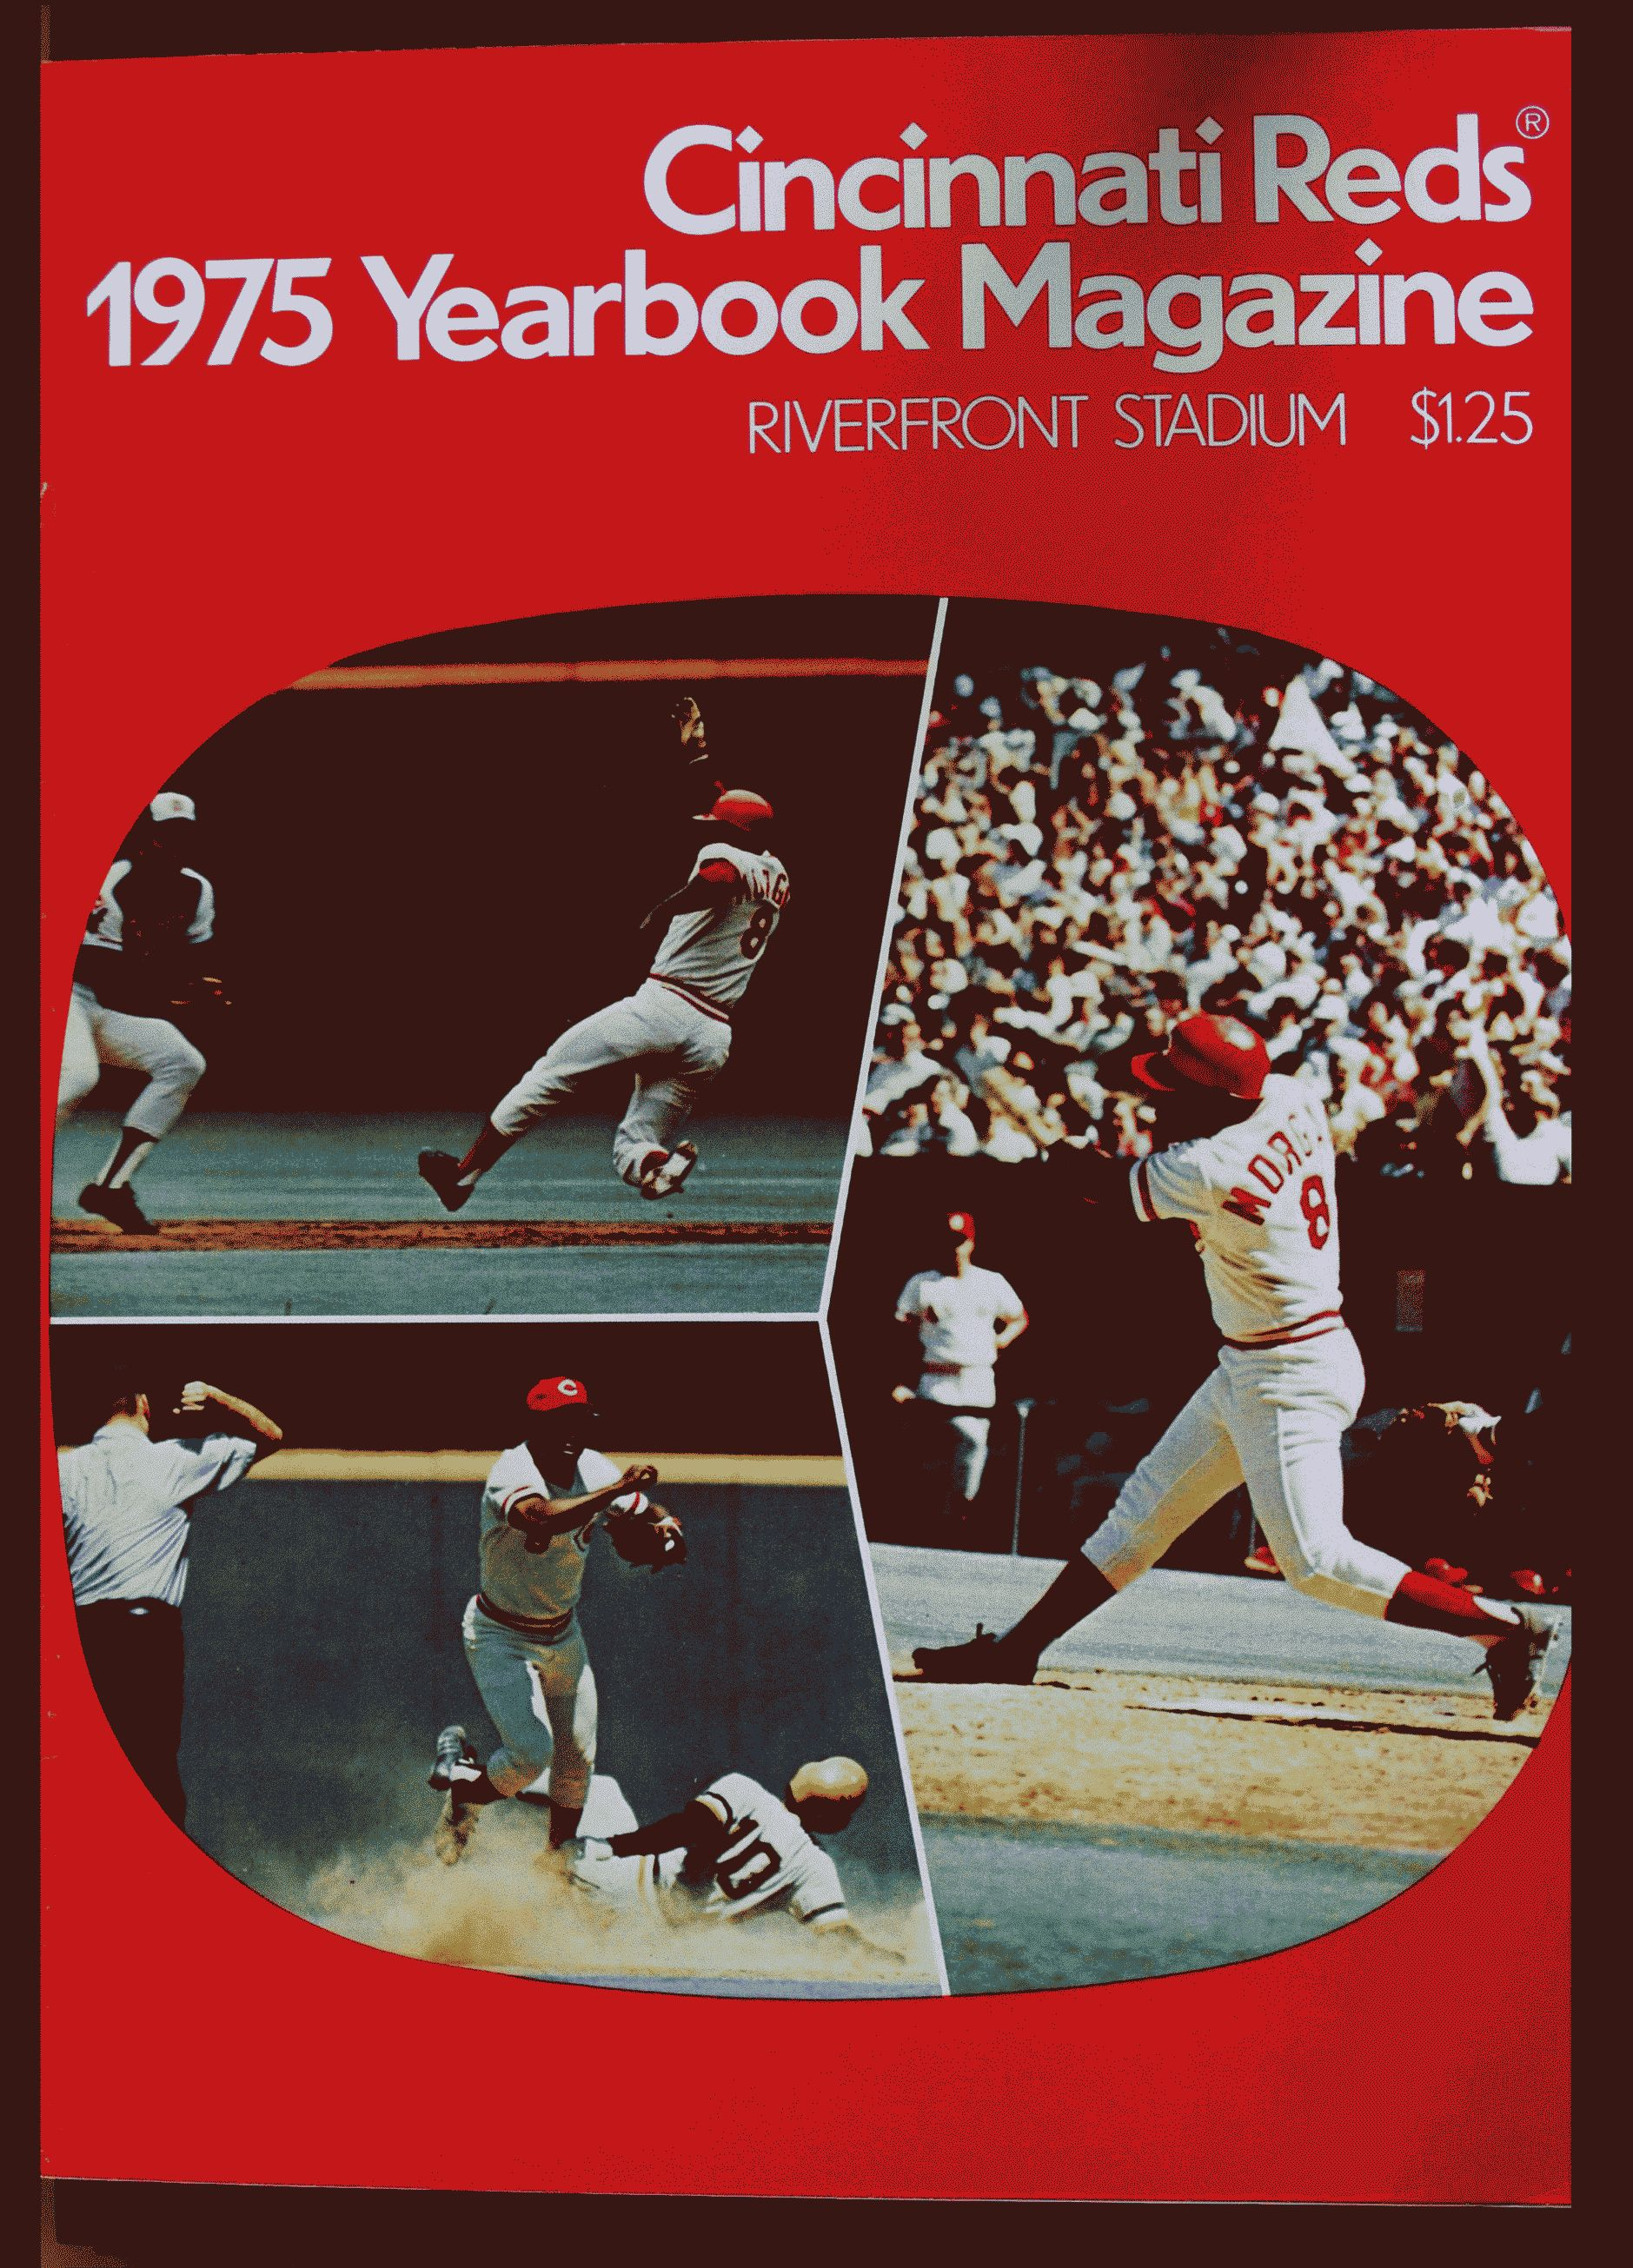 1975 Cincinnati Reds Yearbook - Joe Morgan